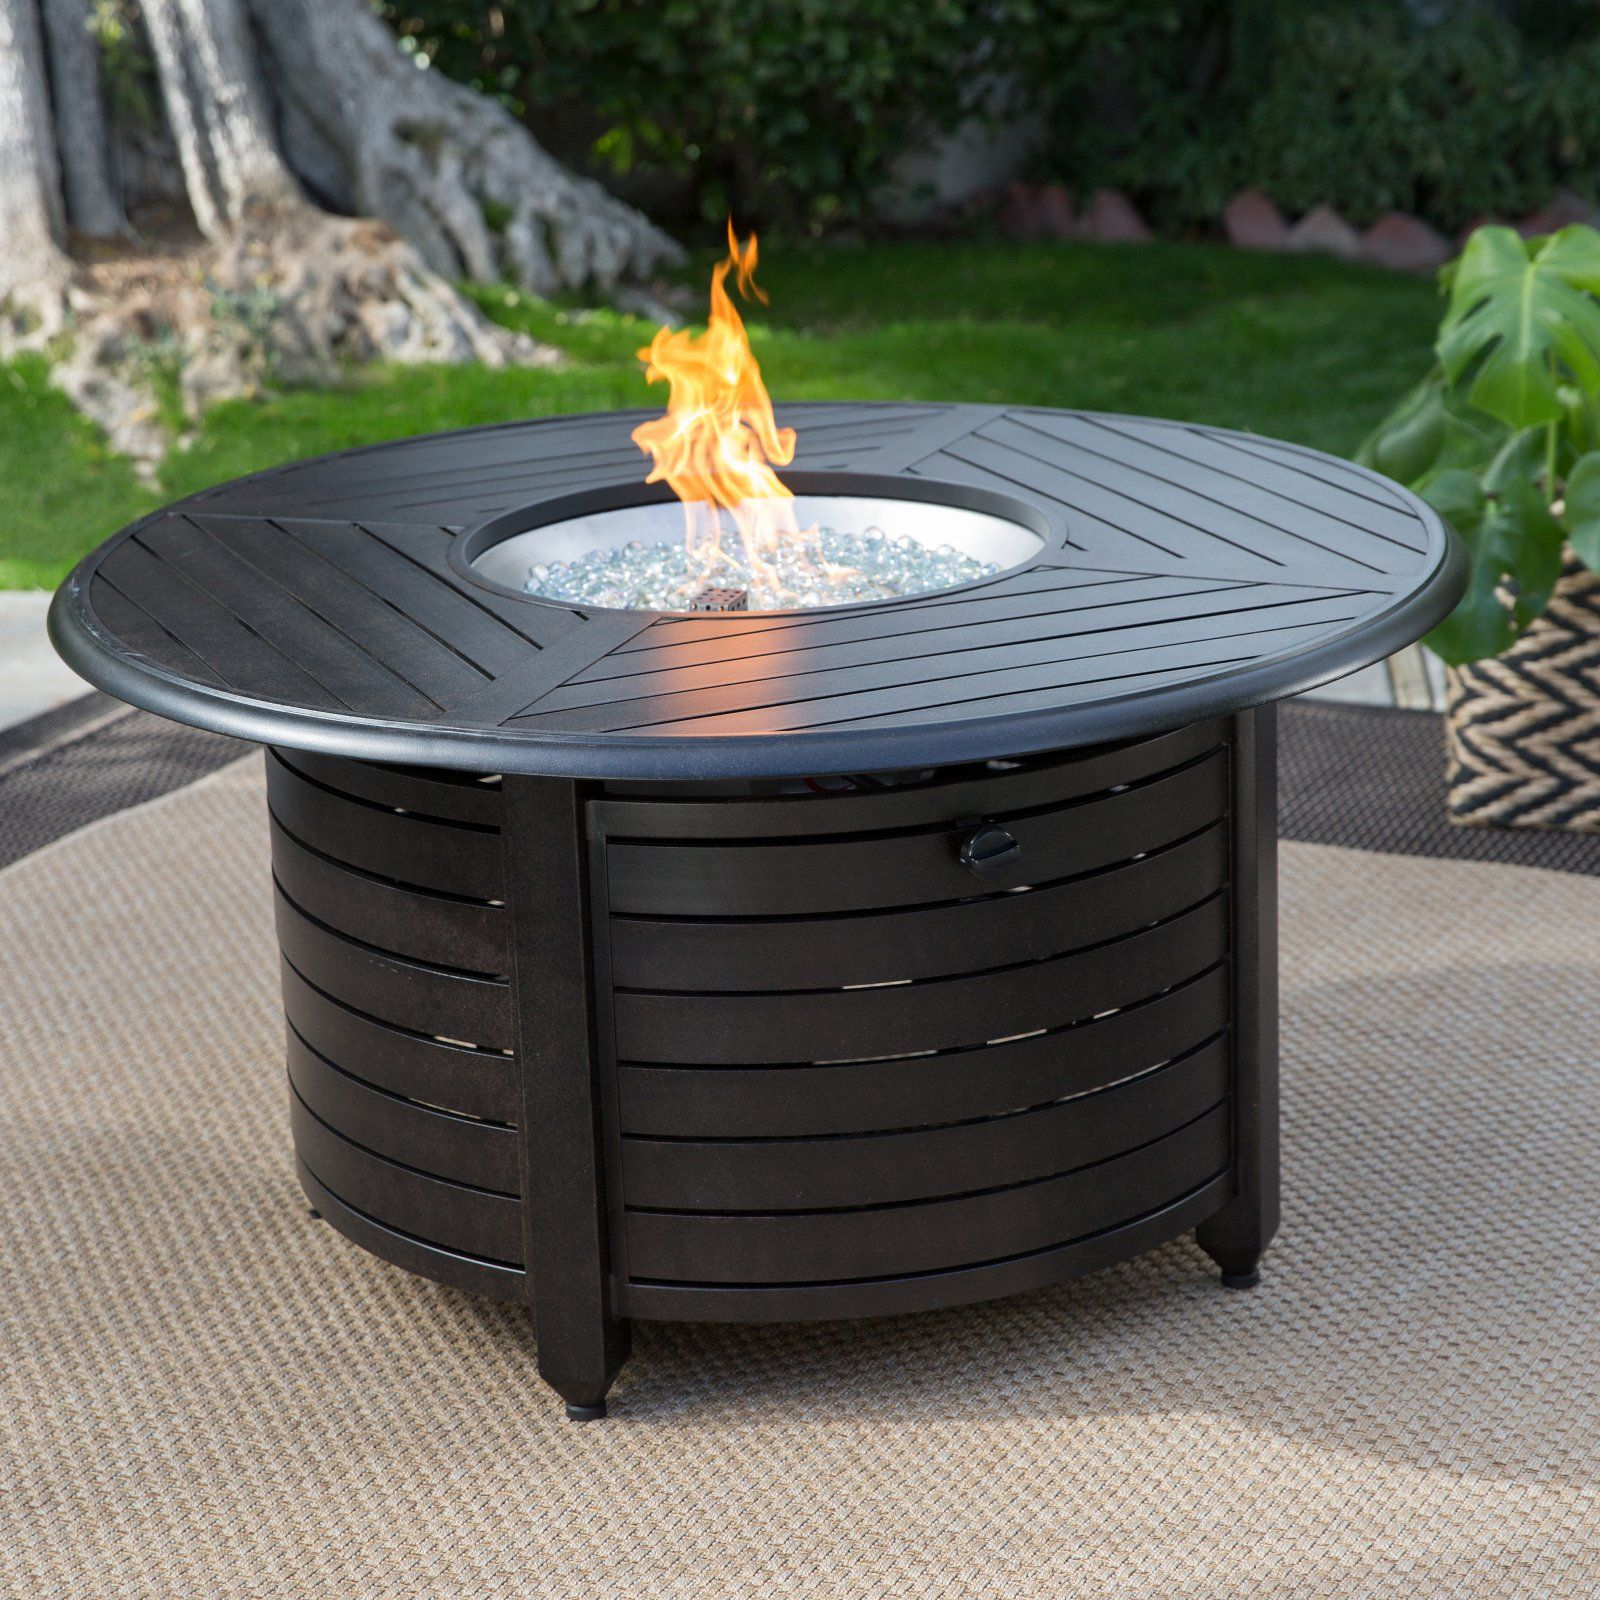 Patio Garden In 2020 Round Fire Pit Table Fire Pit Table